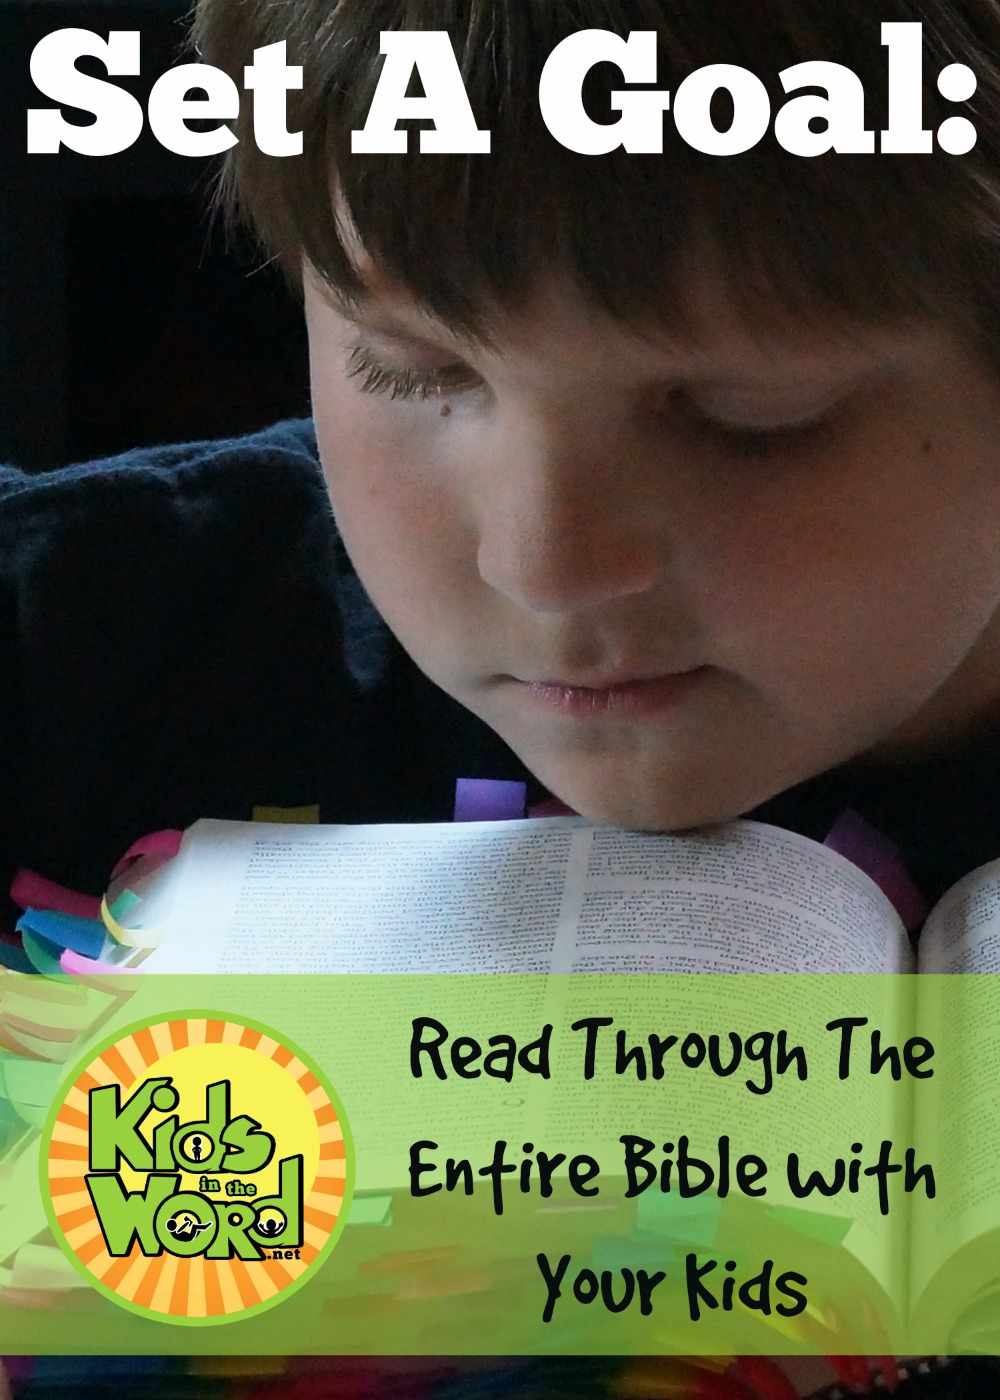 Set A Goal - Reading the entire Bible with your kids before they leave your home. Read how we're doing this in our home at Kids in the Word.